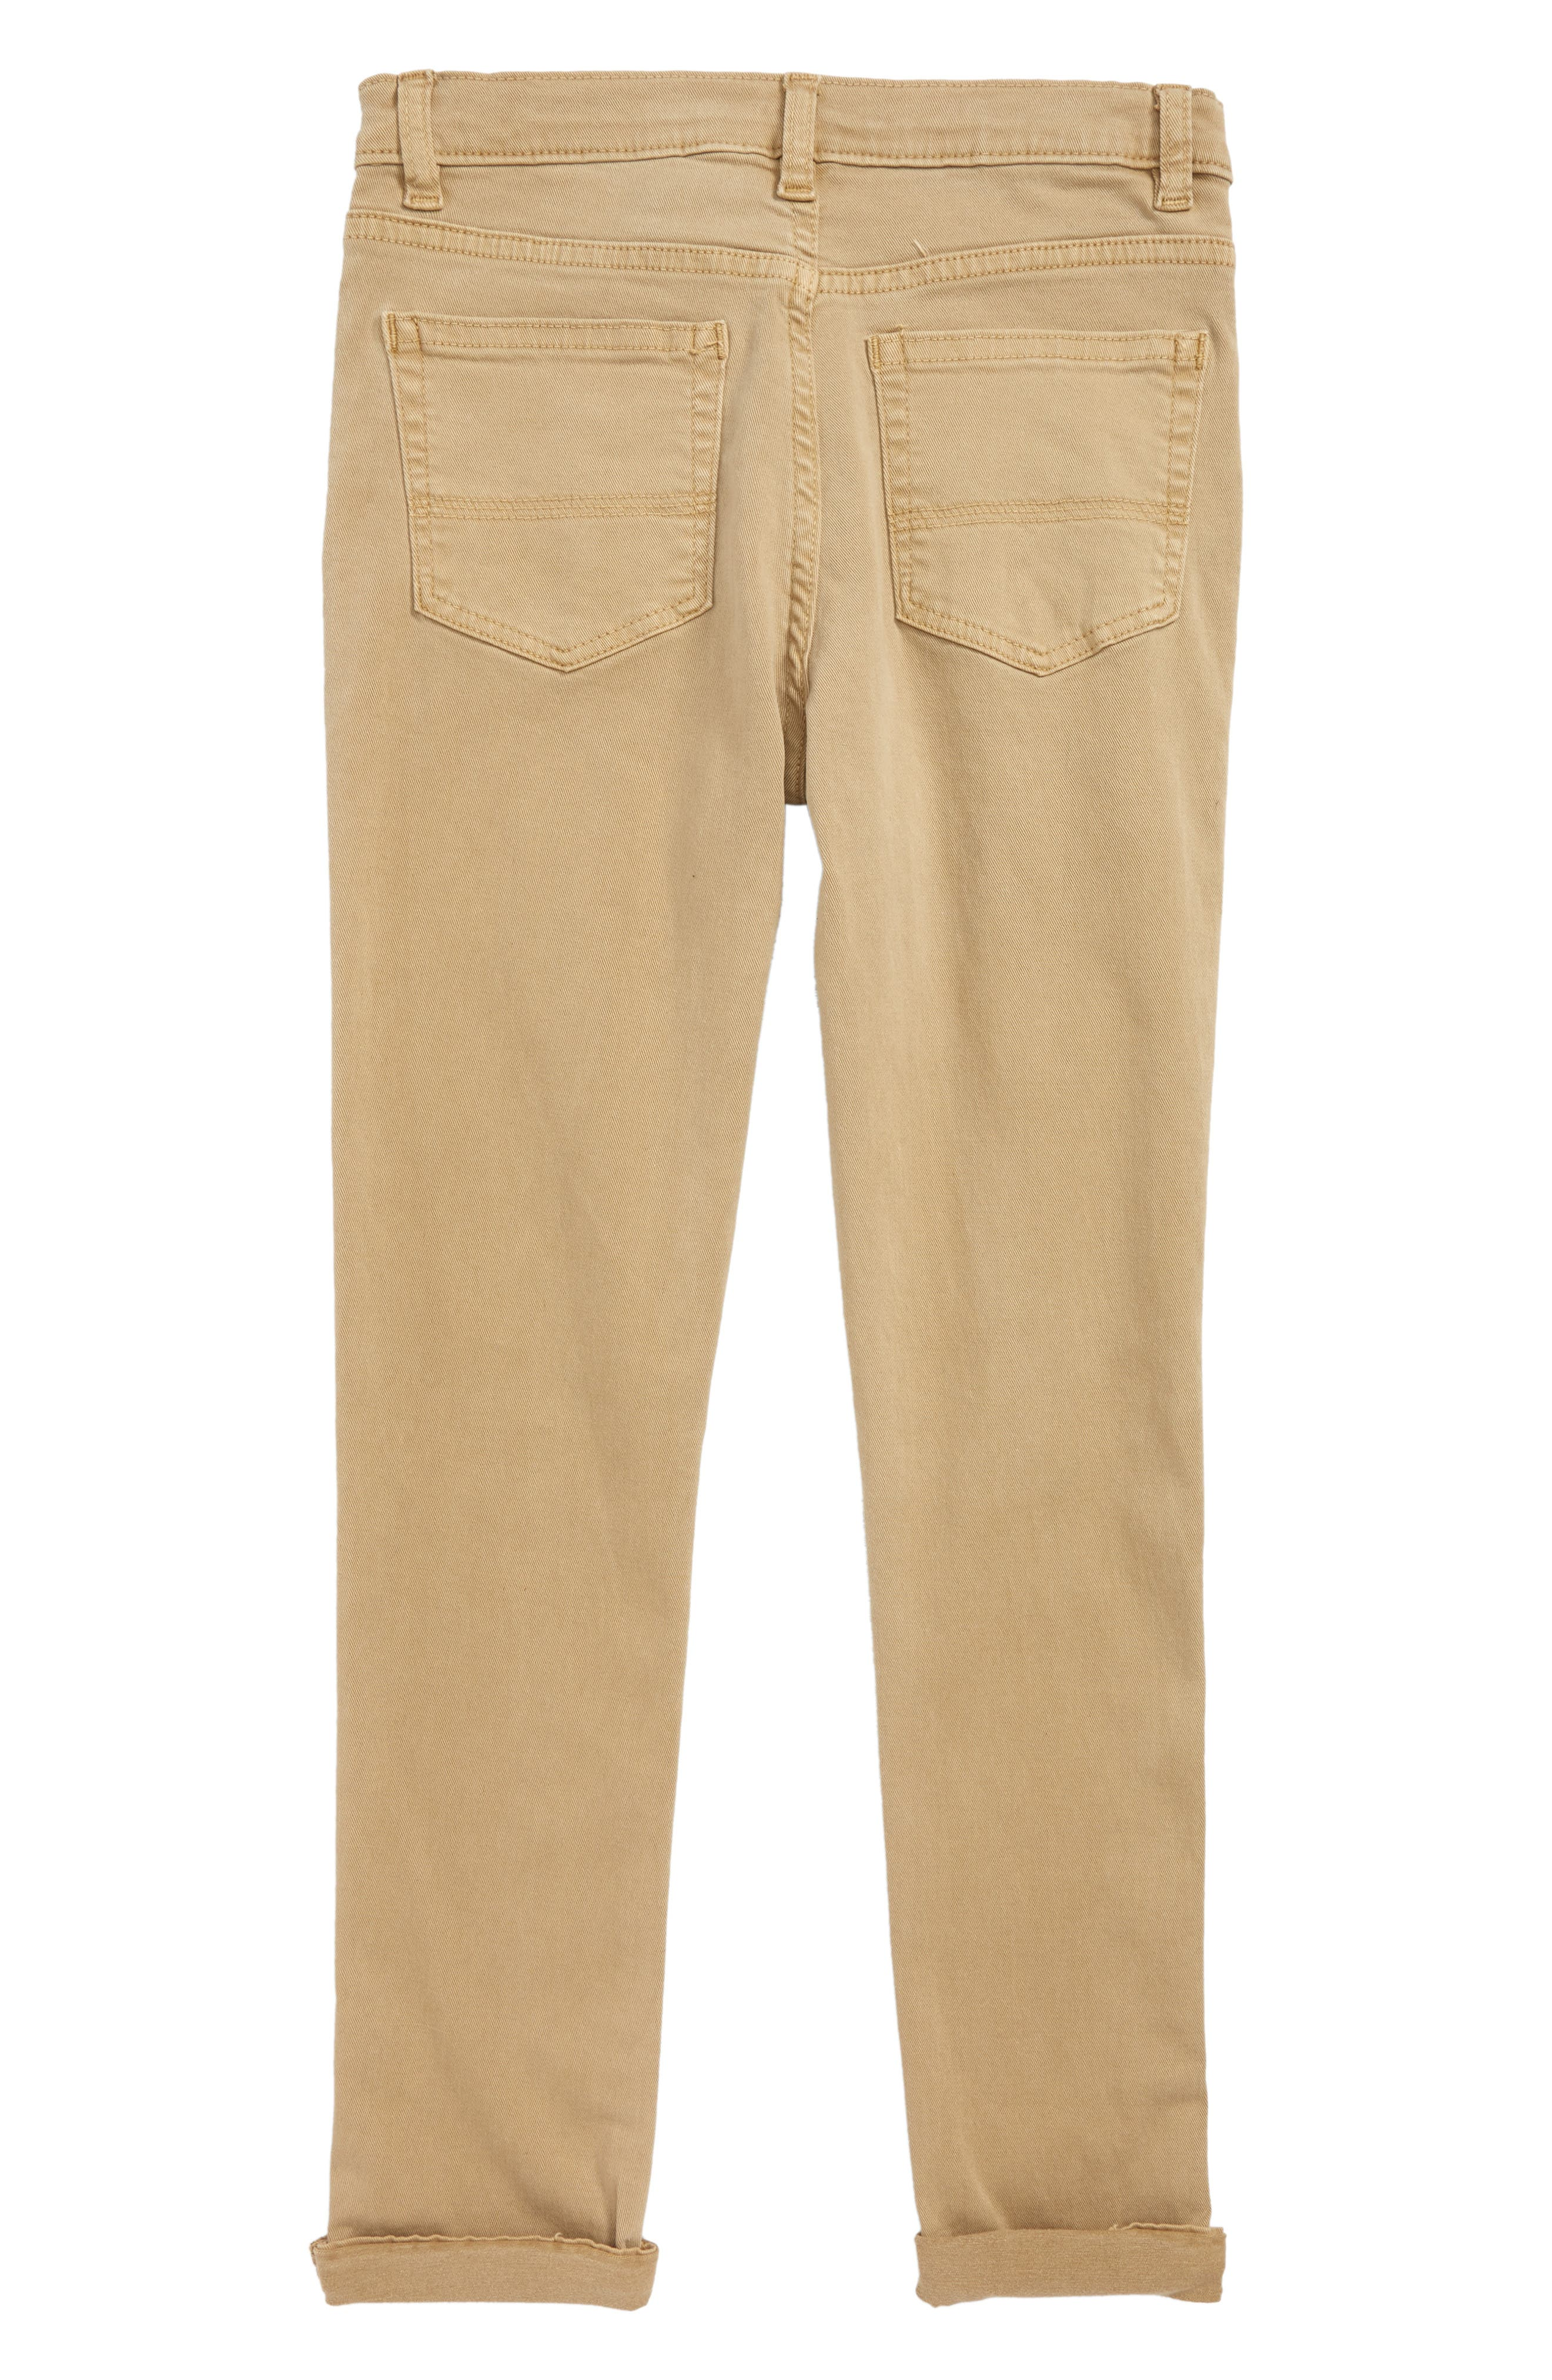 Slouch Twill Jeans,                             Alternate thumbnail 2, color,                             250